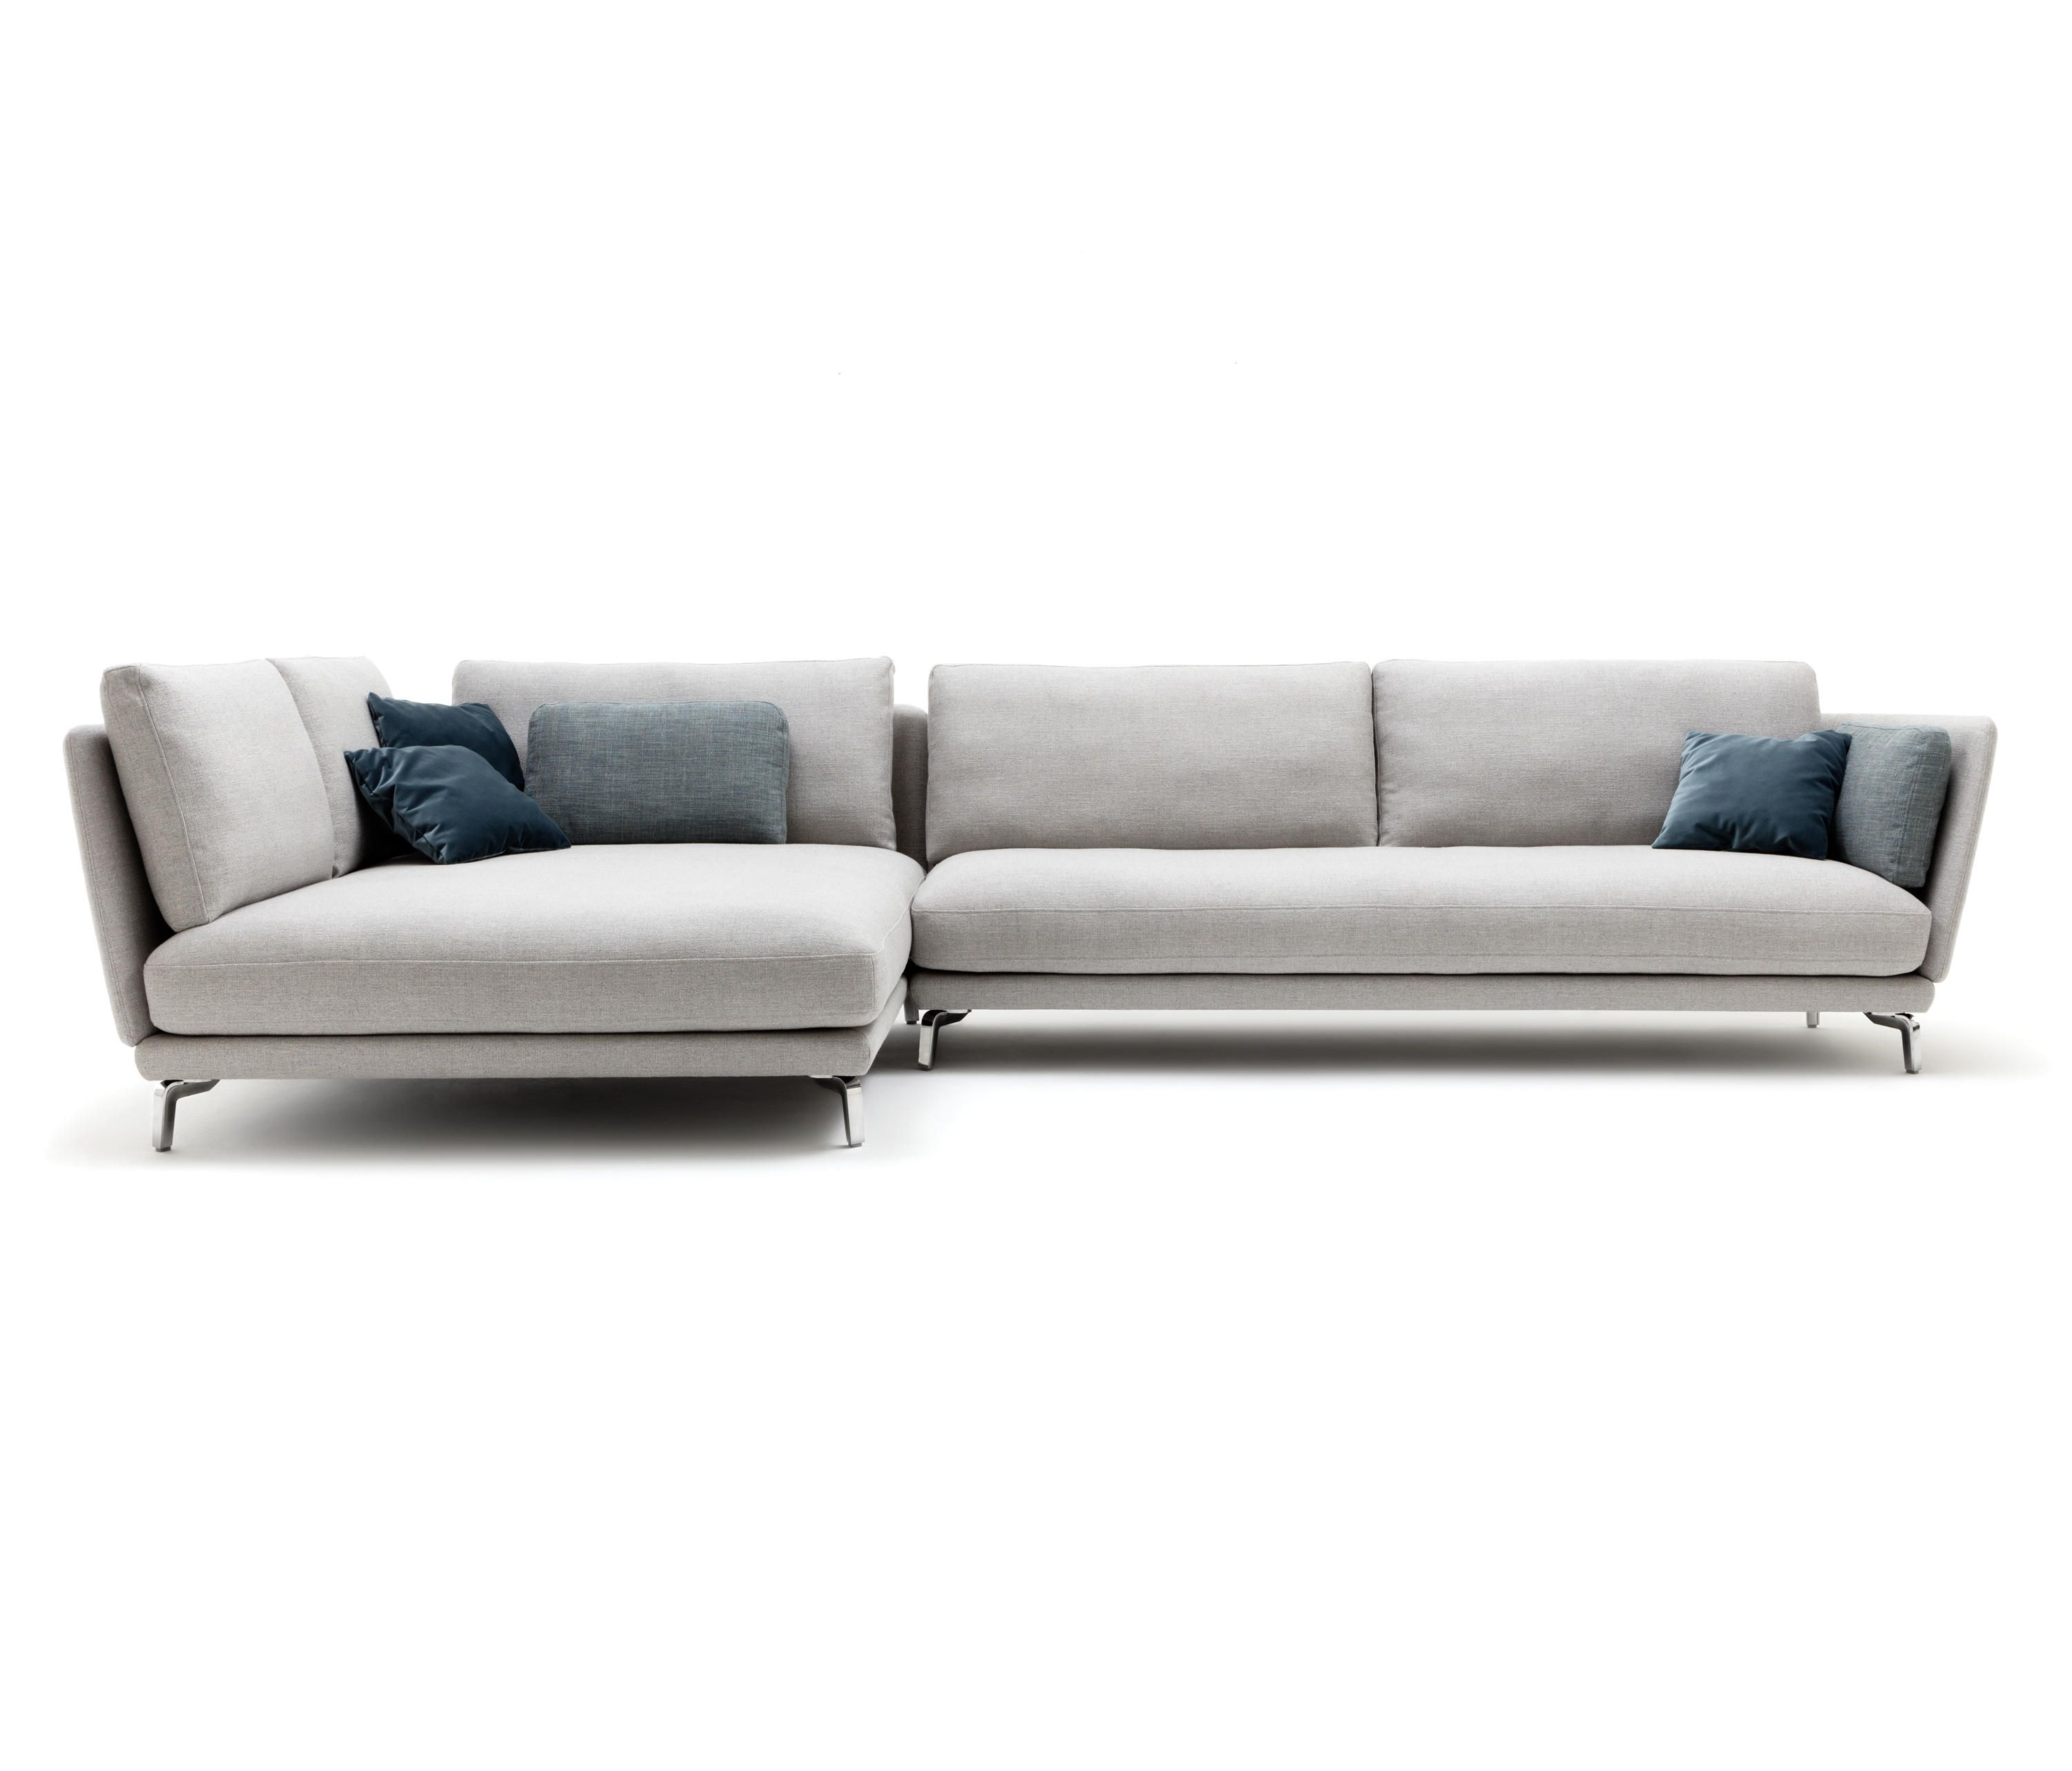 Rolf Benz Rondo Designer Sofas From Rolf Benz All Information